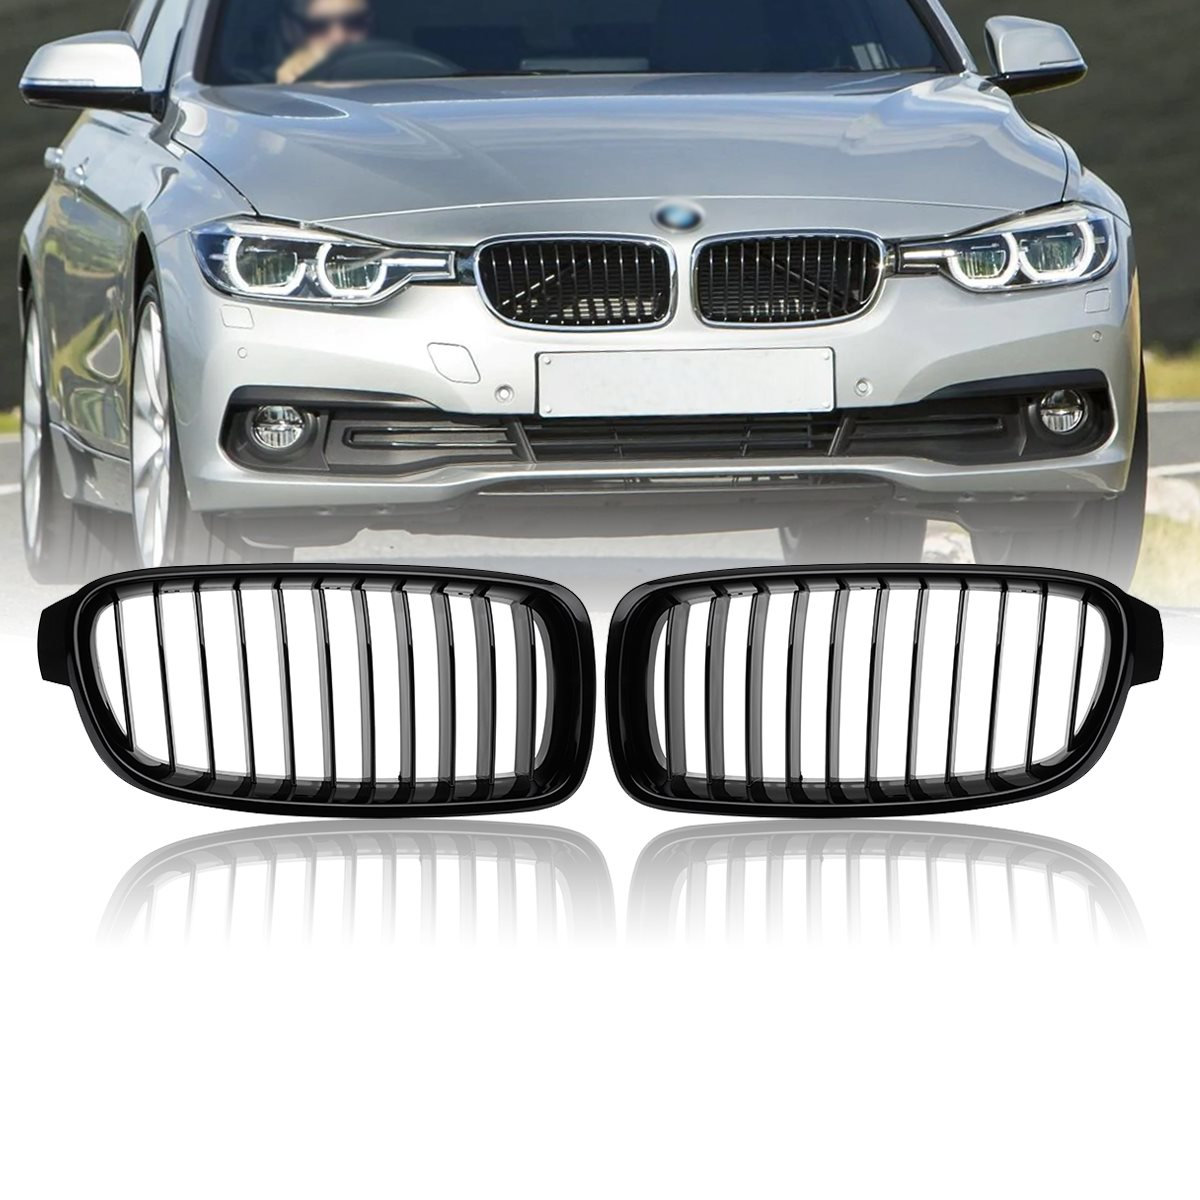 2Pcs Gloss Black Car Front Kidney Grilles For BMW F30 F31 3 Series Saloon 2012 2013